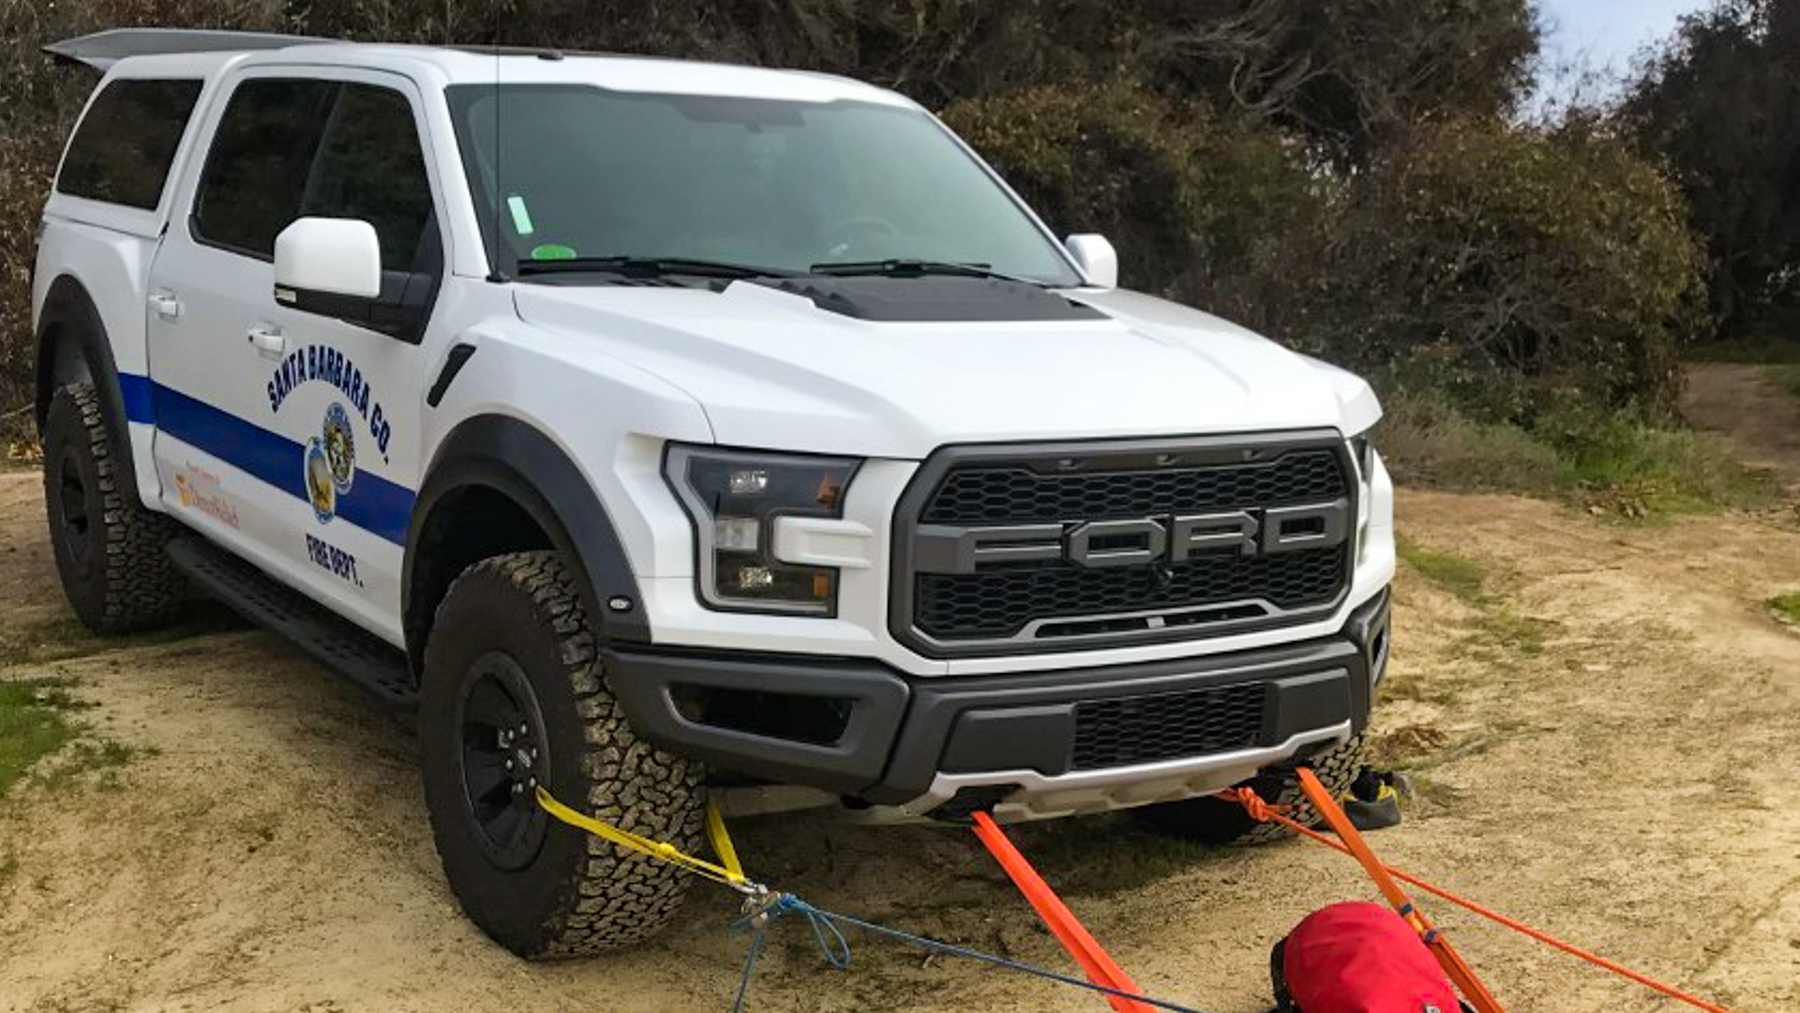 Santa Barbara County Fire Department's new Ford Raptor. (Photo Courtesy of the Santa Barbara County Fire Department)